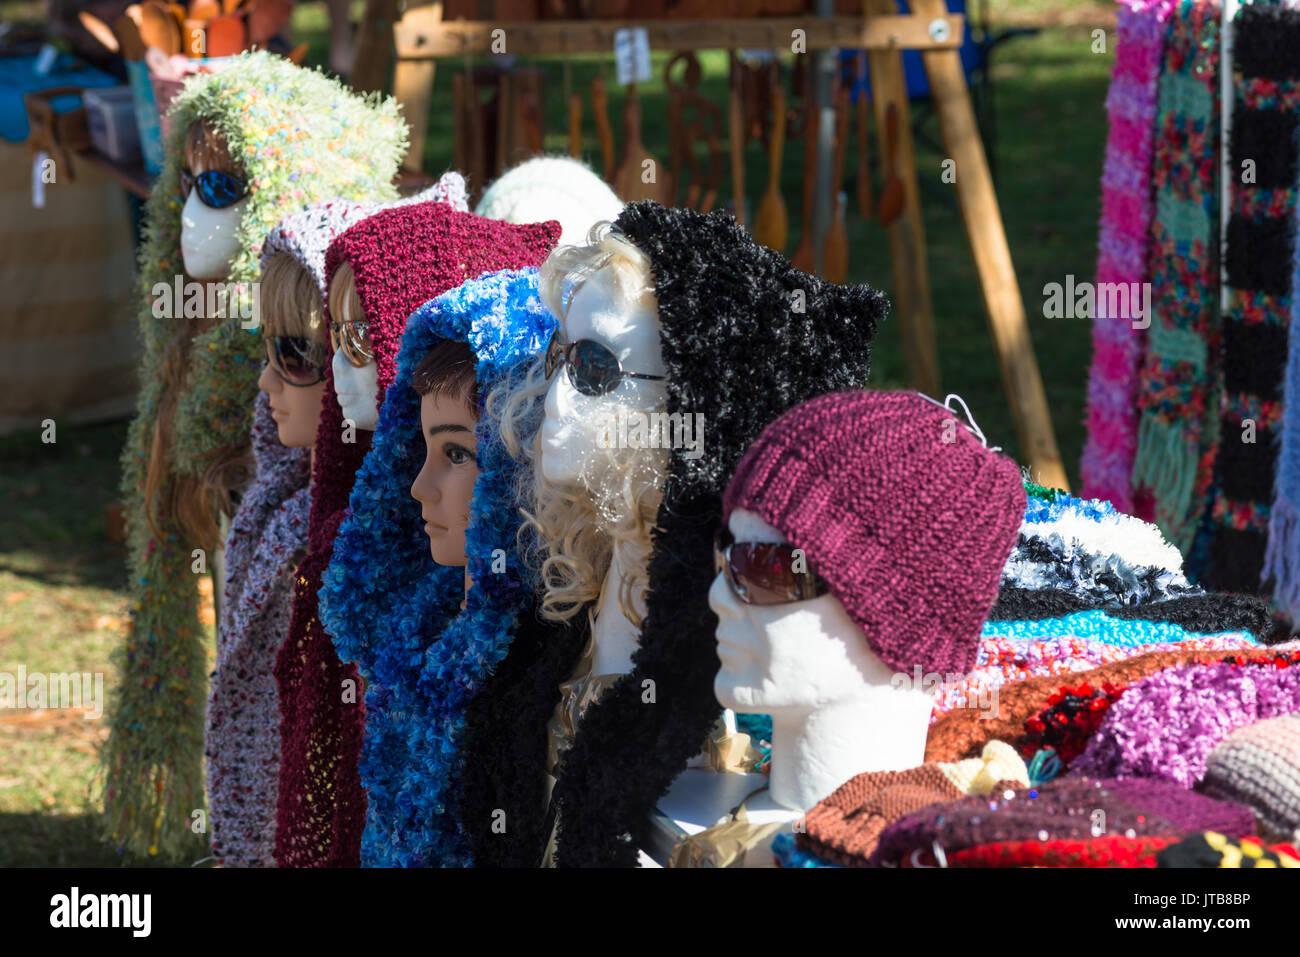 Harbourside markets at Coffs Harbour, New South Wales, Australia. - Stock Image